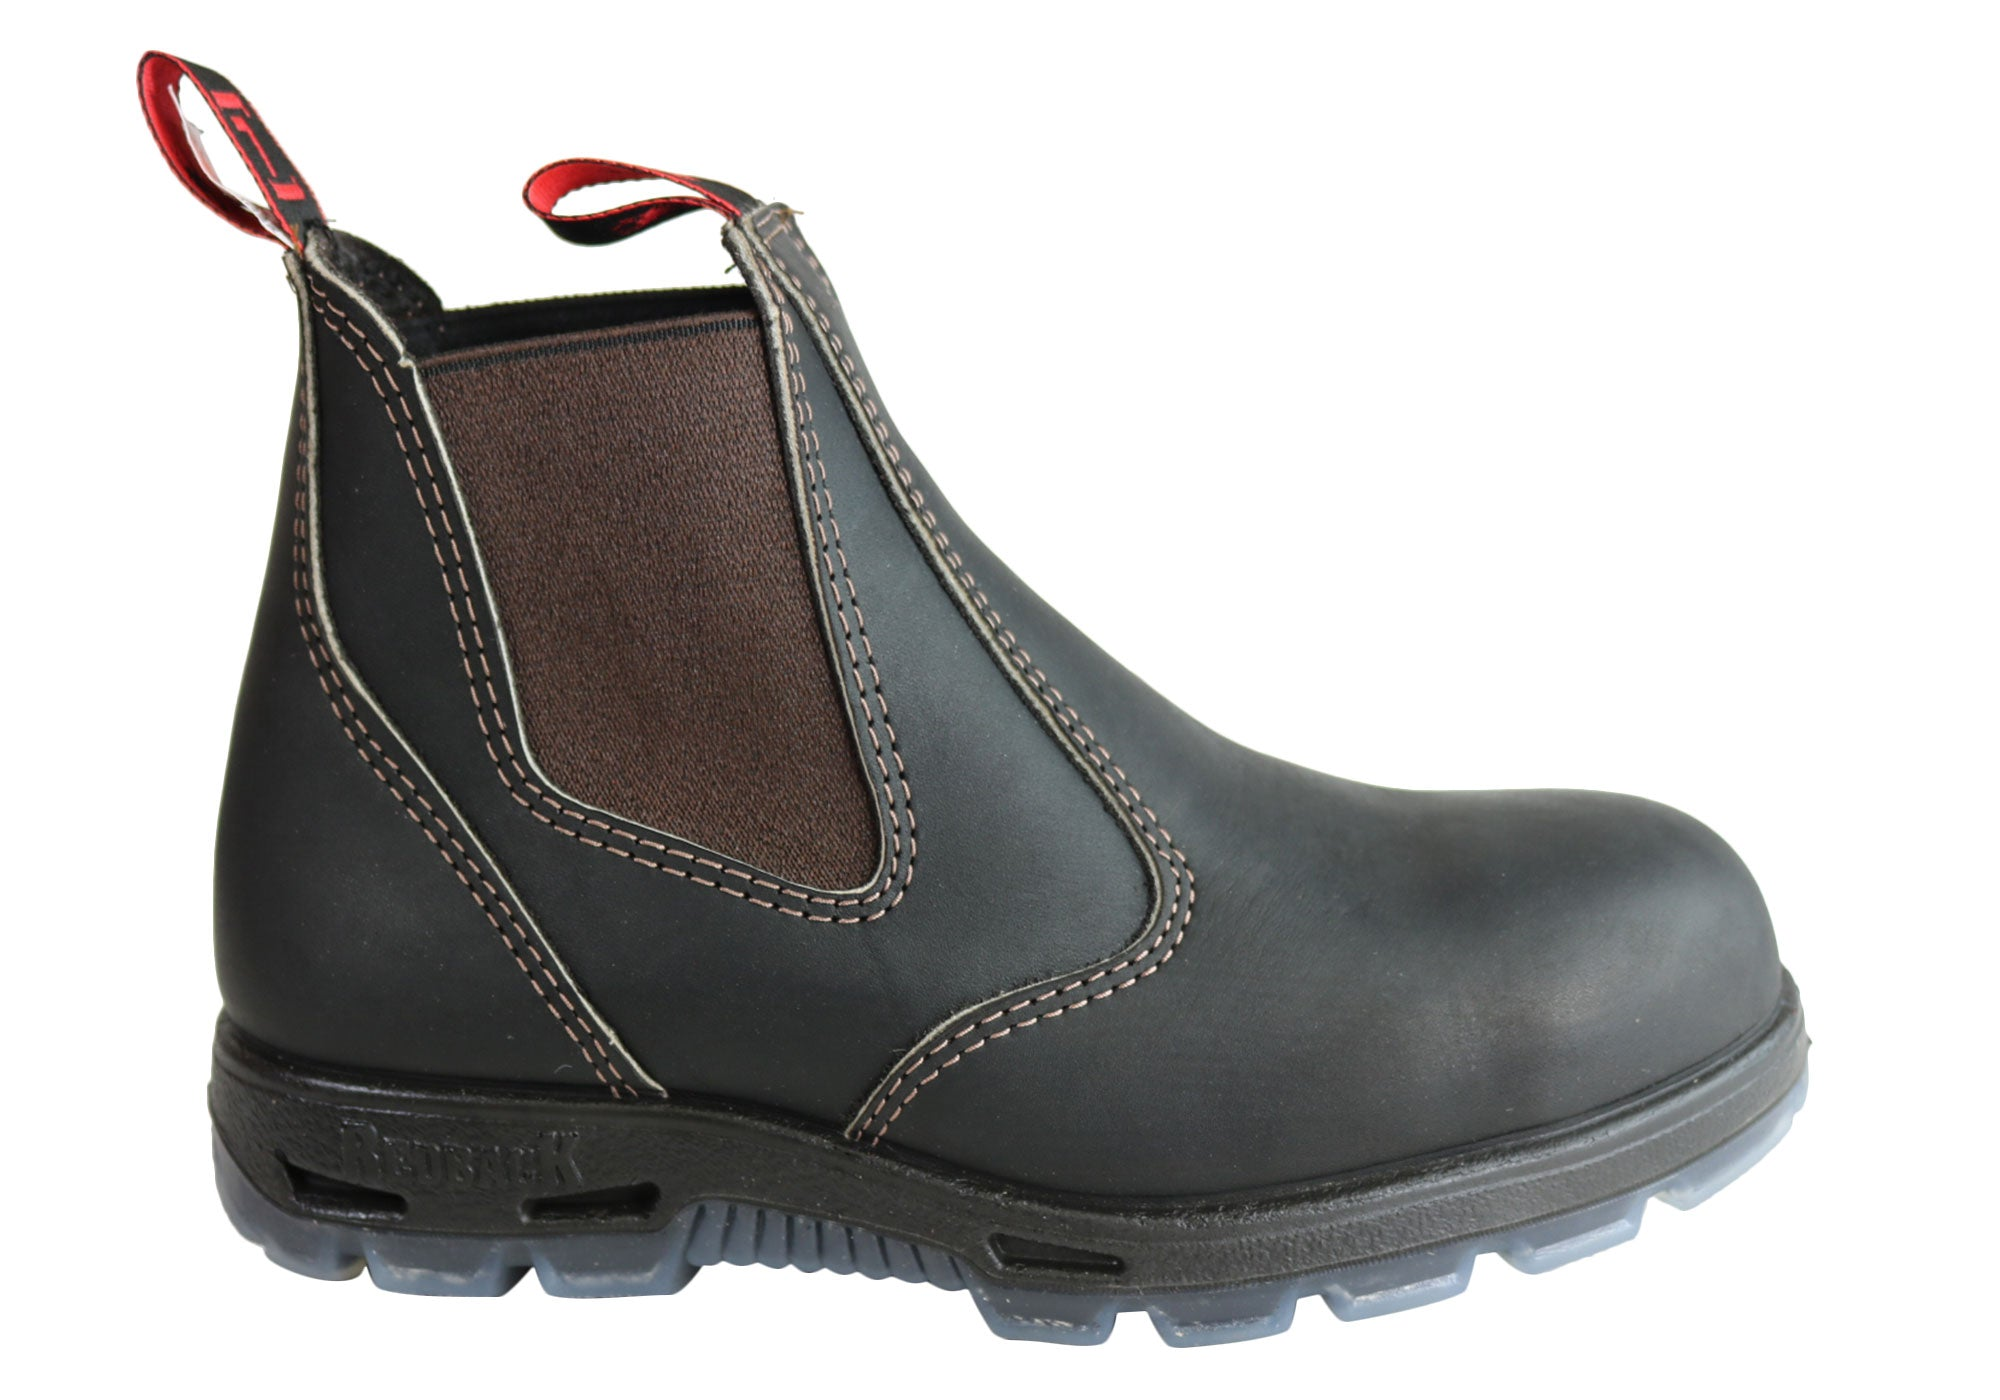 NEW REDBACK MENS BOBCAT SAFETY TOE STEEL CAP USBOK LEATHER WORK BOOTS 5ae2df0cb